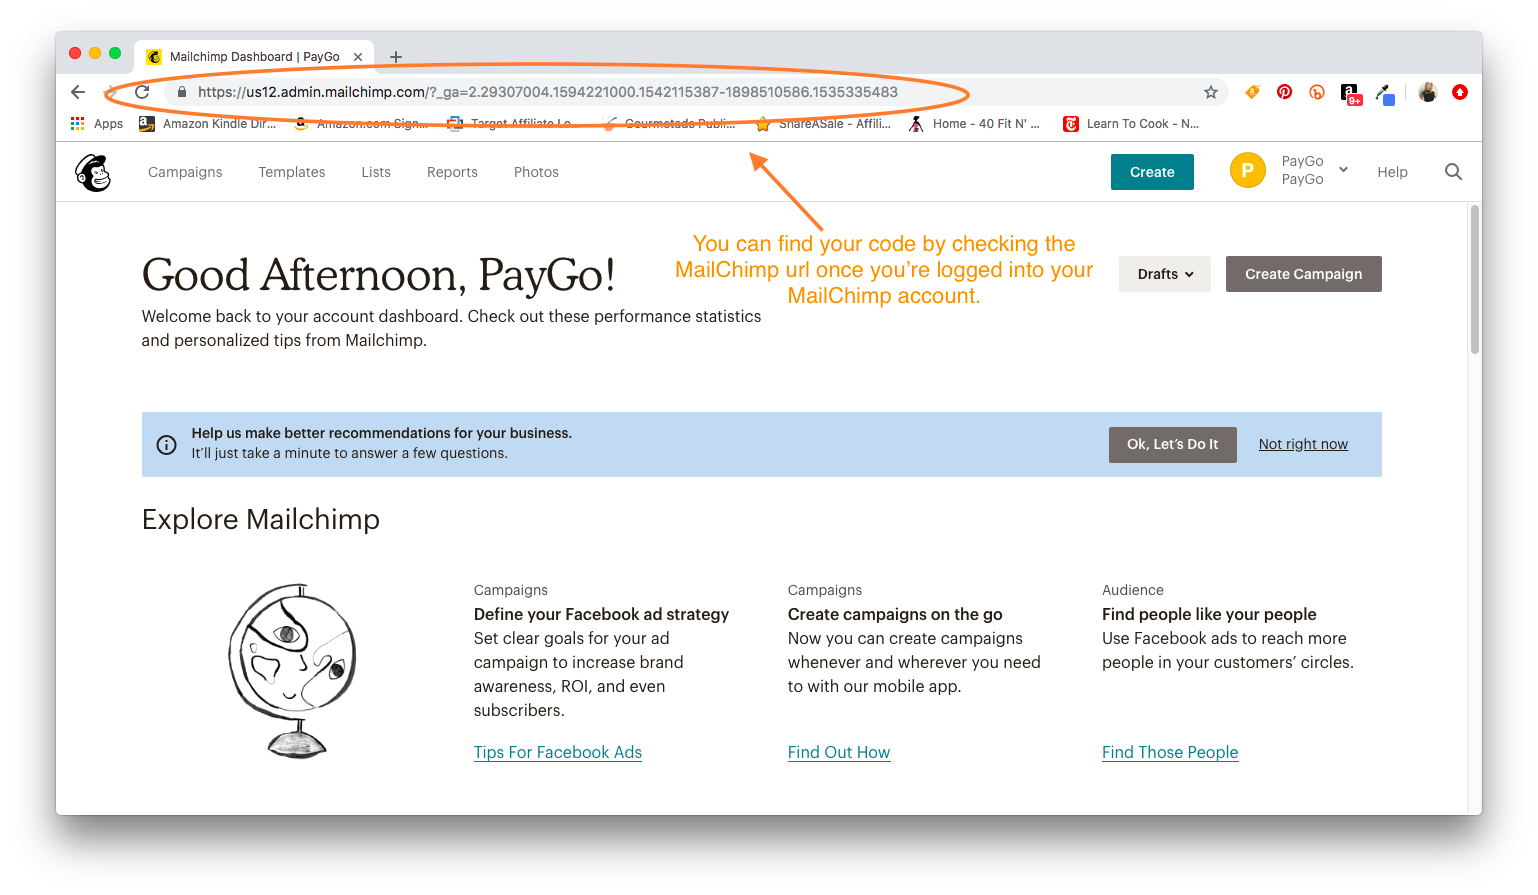 Check MailChimp URL to find your code for PayGo MC